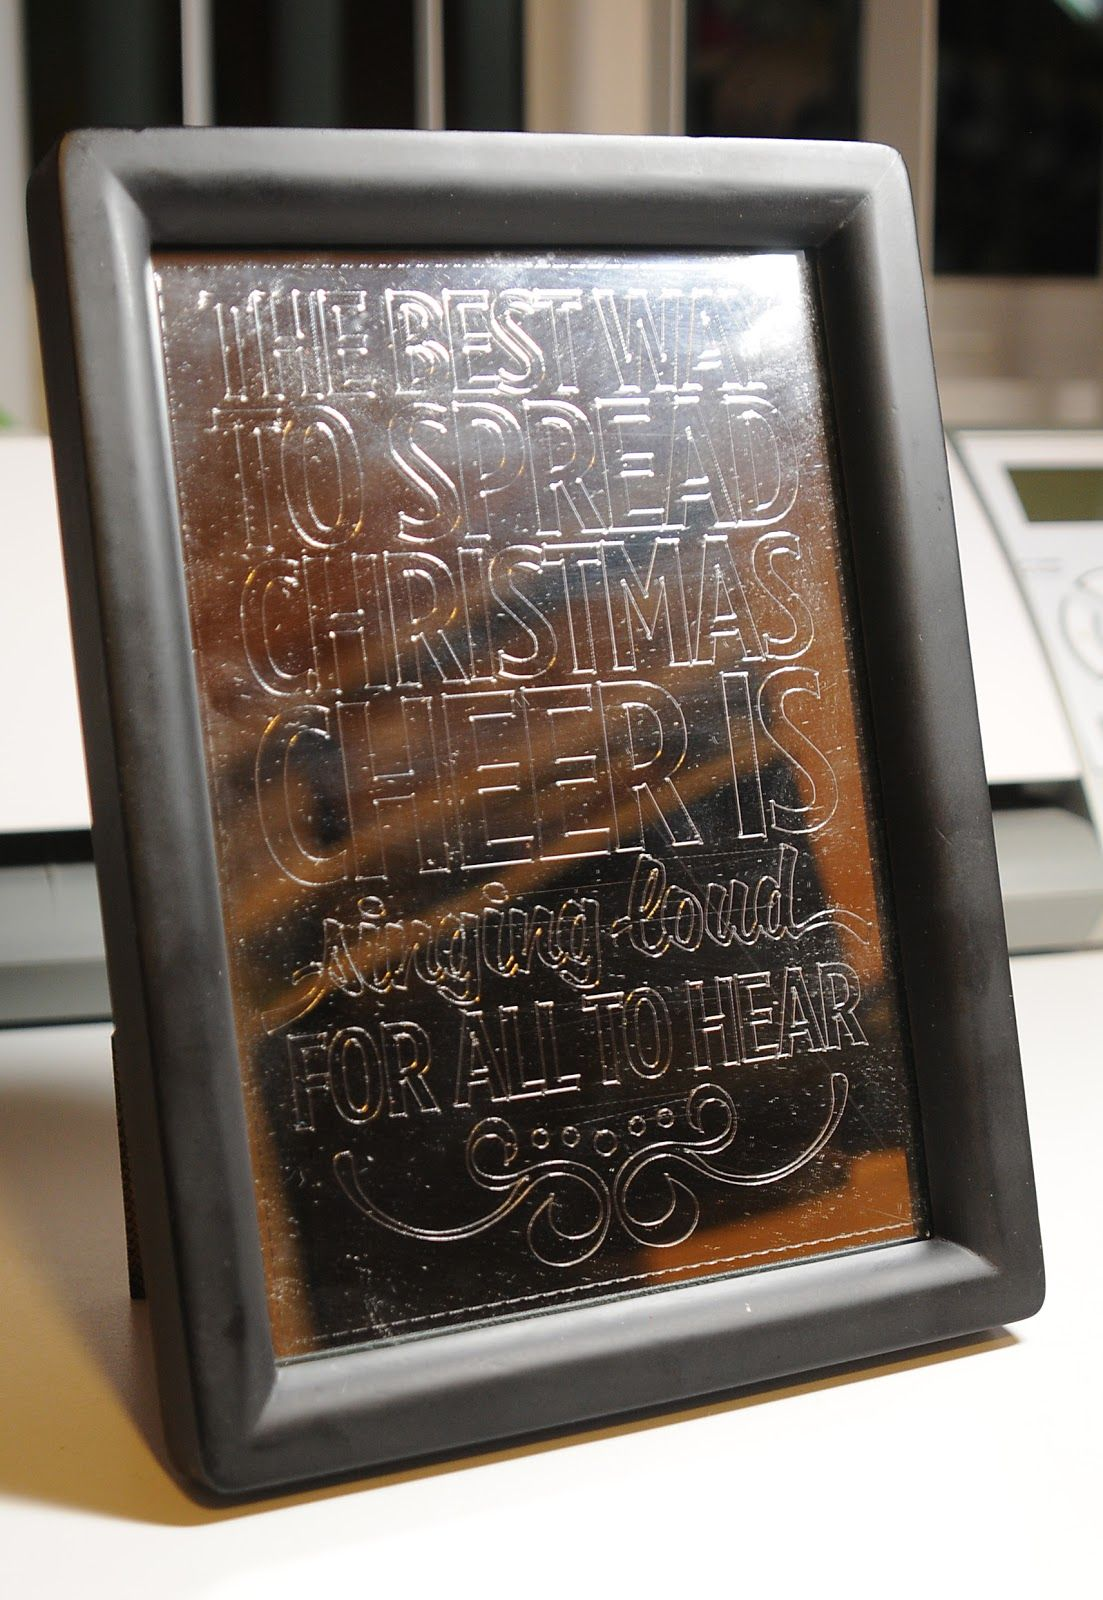 Engraved Mirror With Chomas Creations Engraving Tip In The